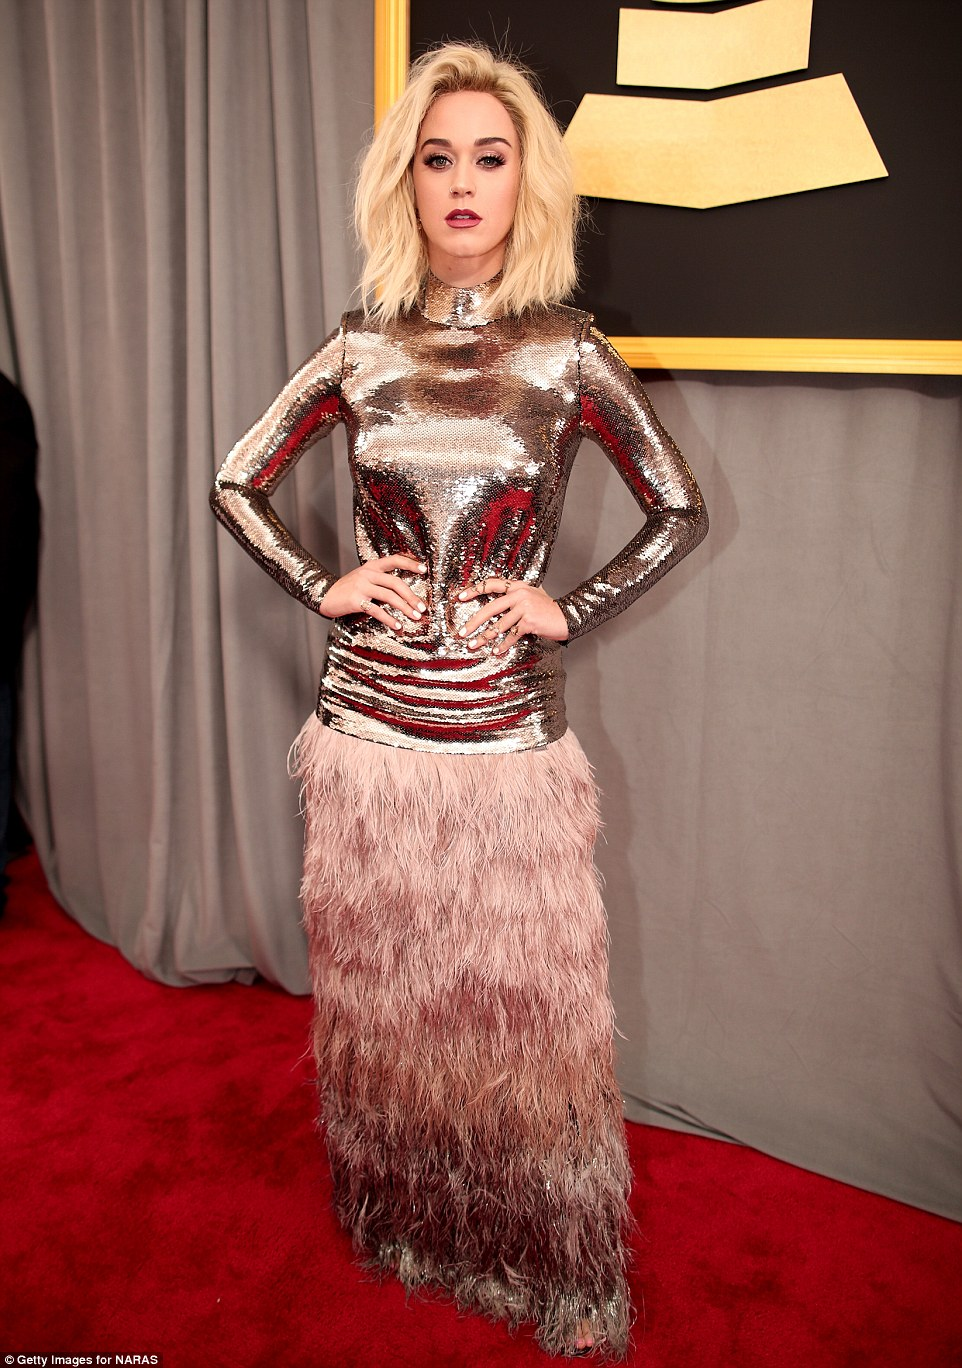 Mixing it up! Katy Perry rocked a unique Tom Ford creation with sequins and feathers